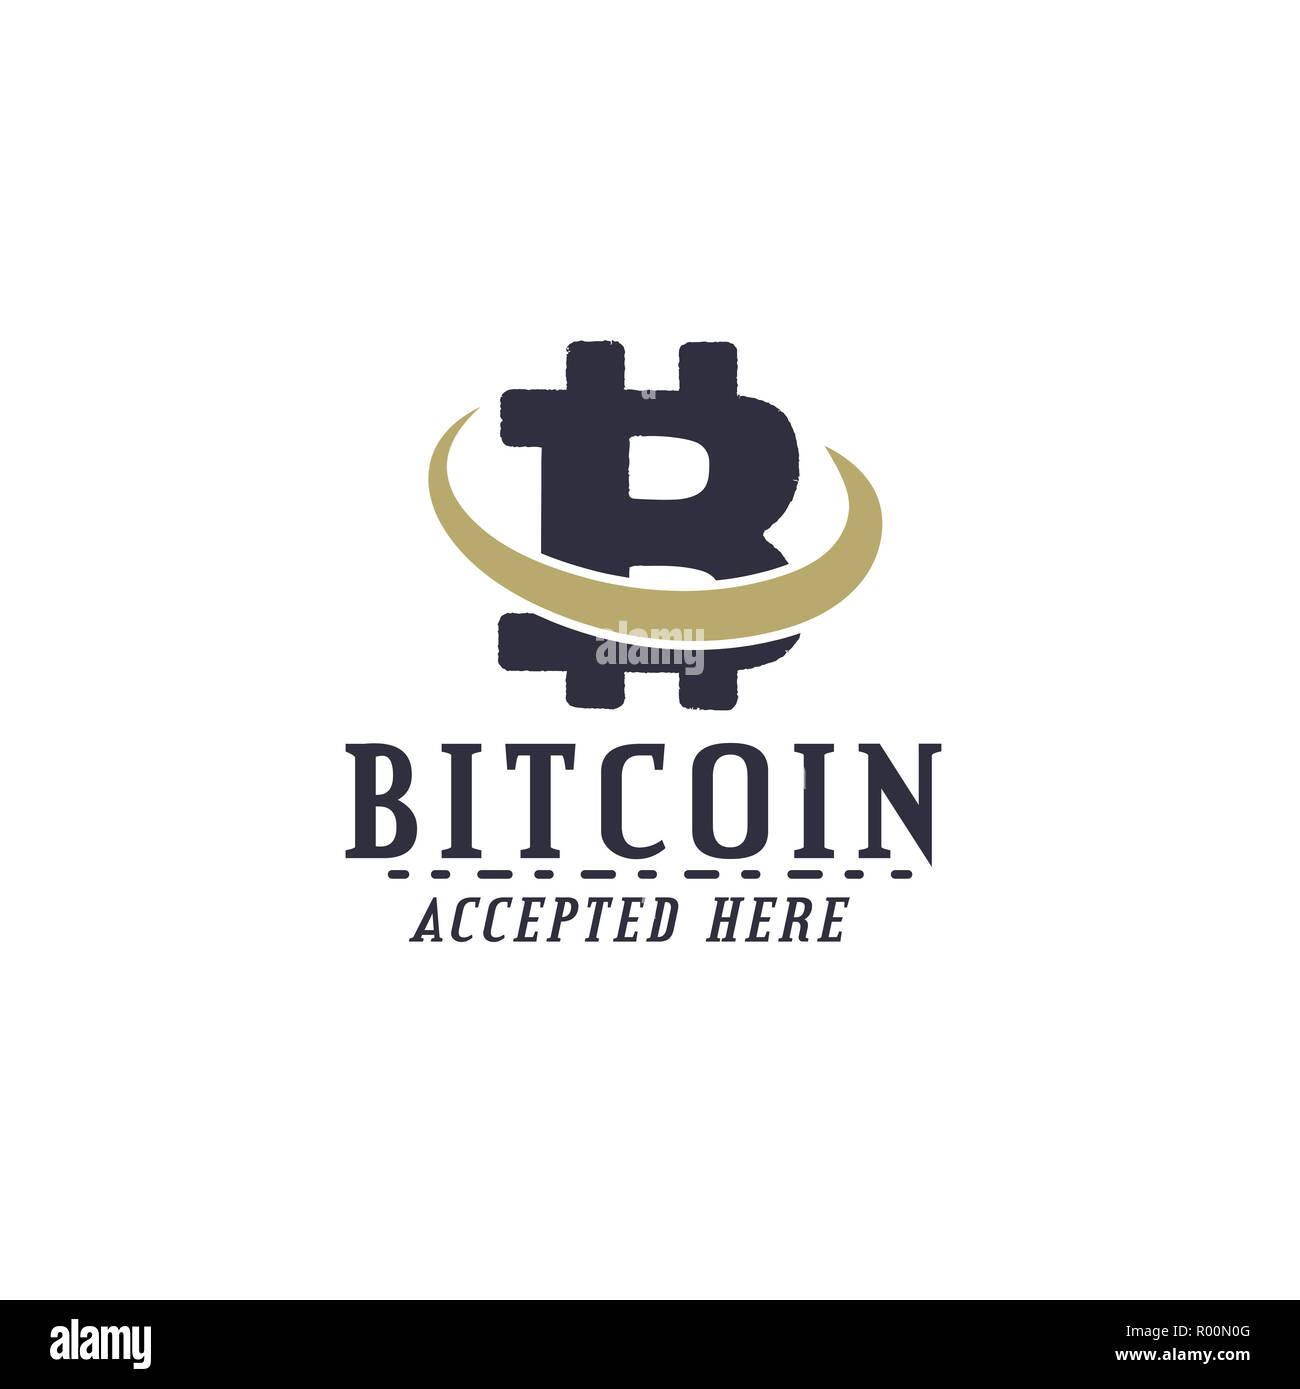 Bitcoin Accepted emblem. Crypto currencies label and concepts. Digital assets logo. Vintage han drawn monochrome design. Technology patch. Stock illustration isolated on white Stock Photo